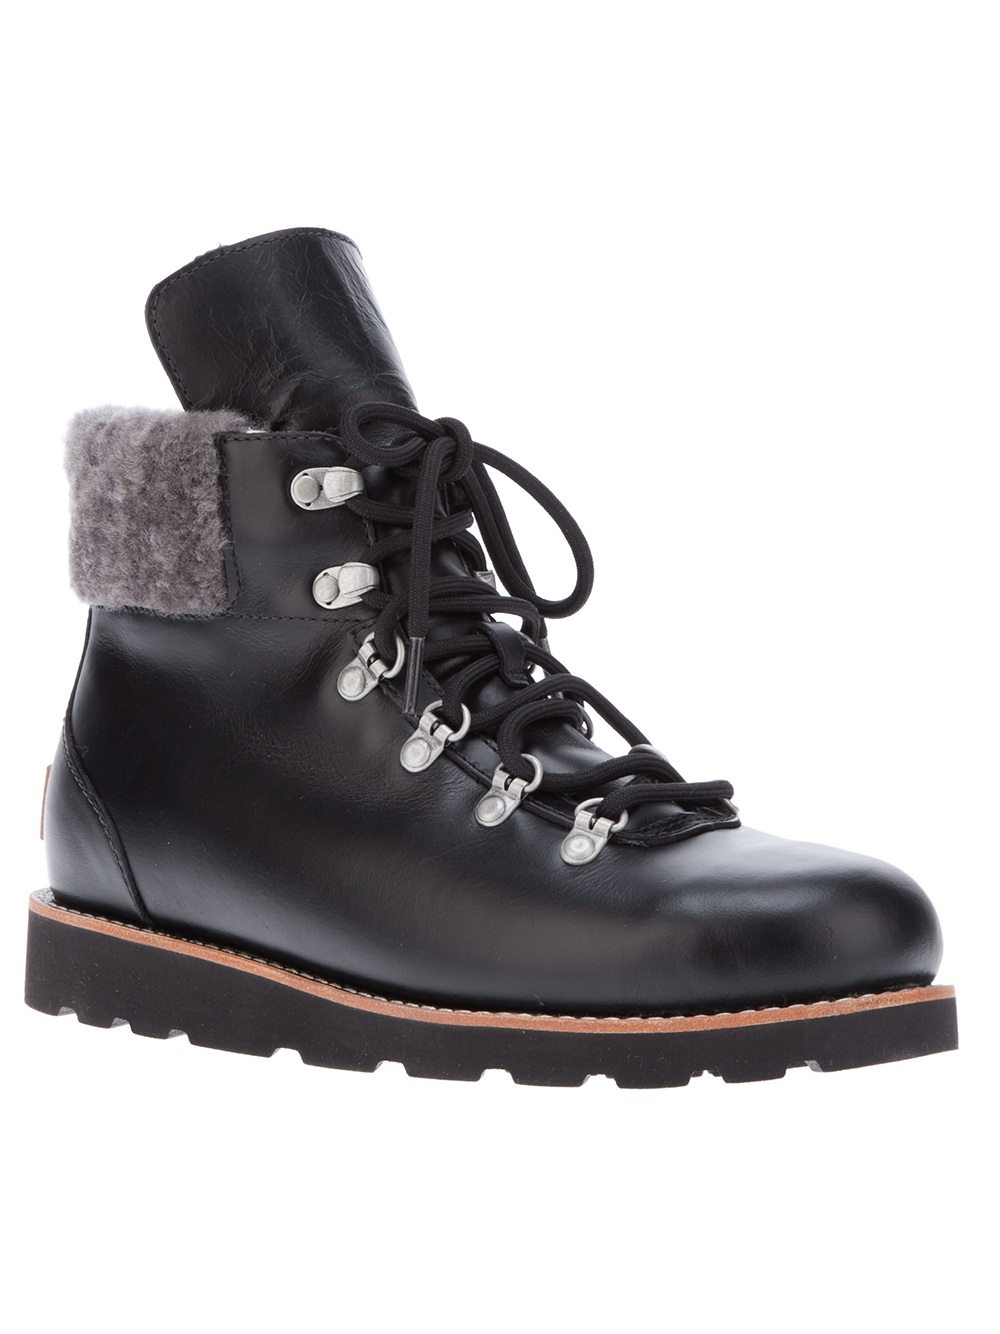 ugg hiking boots womens